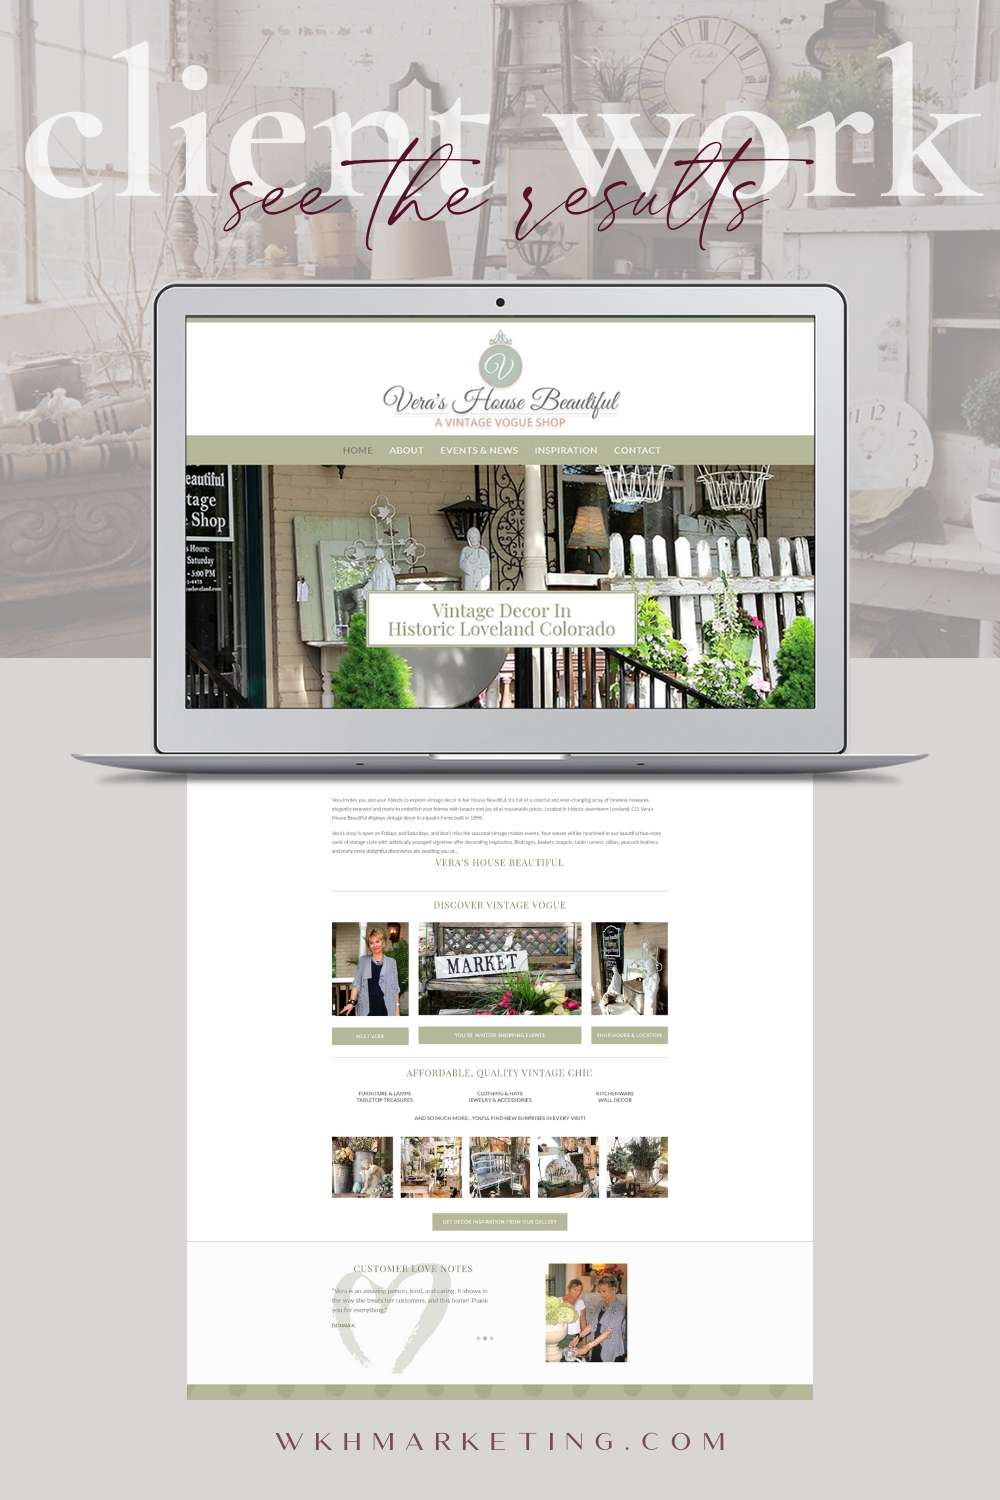 Web Design Retail Store